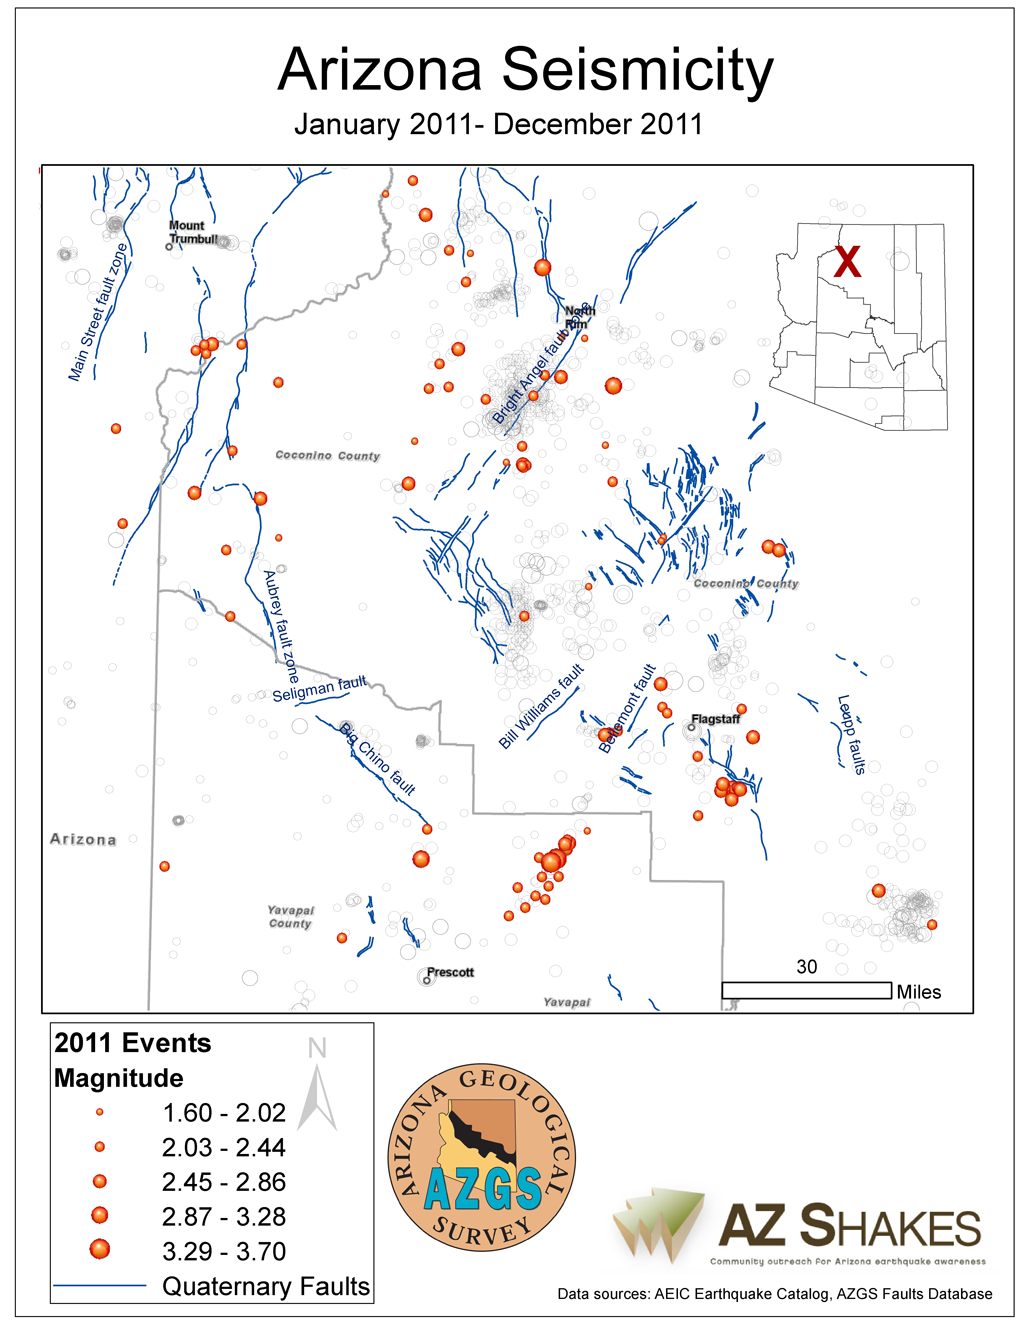 Figure 2 - Closeup of seismicity in Arizona - 2011